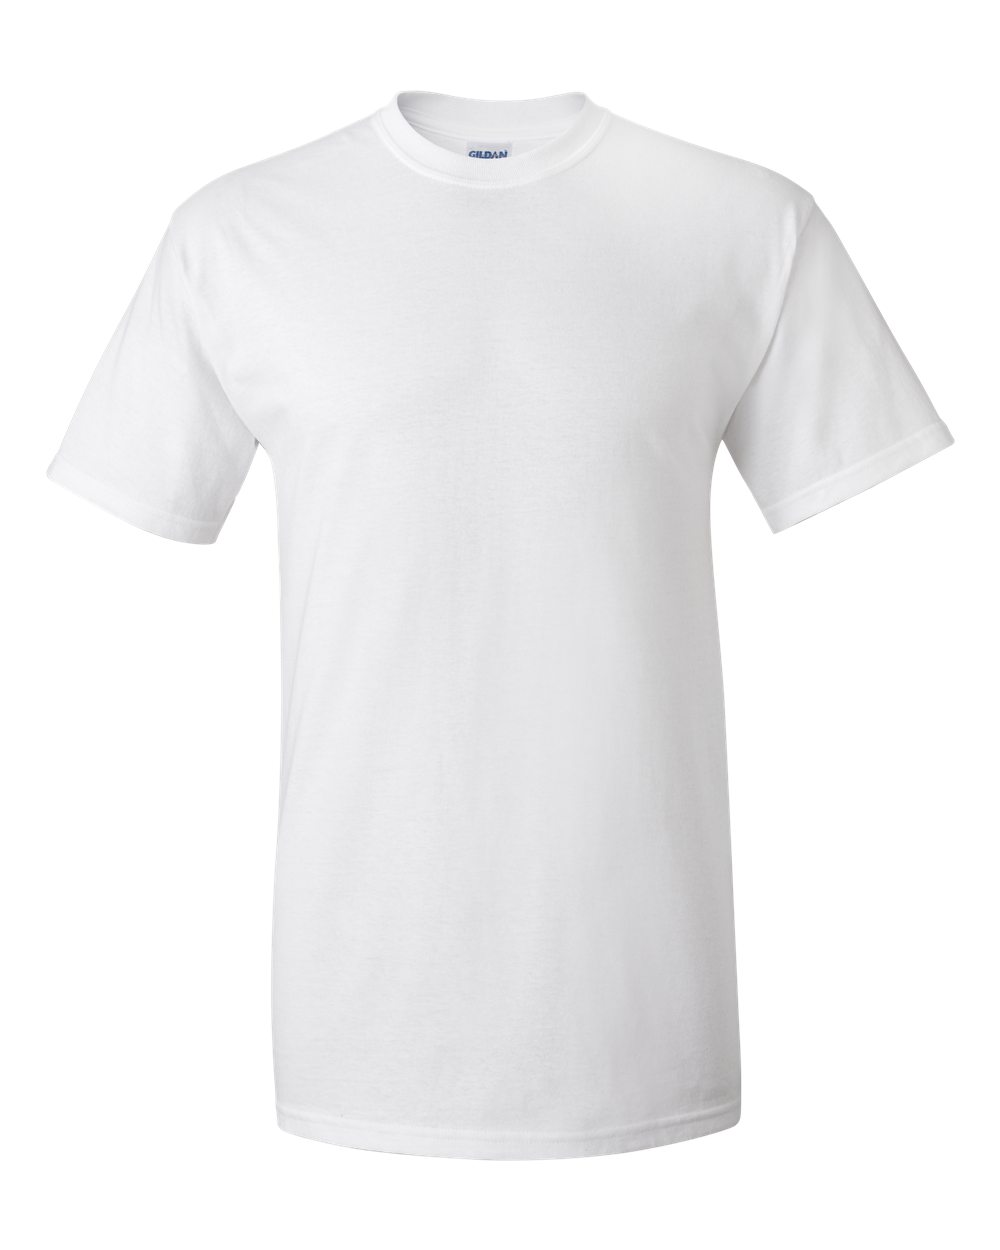 Mens T Shirts Tall Sizes